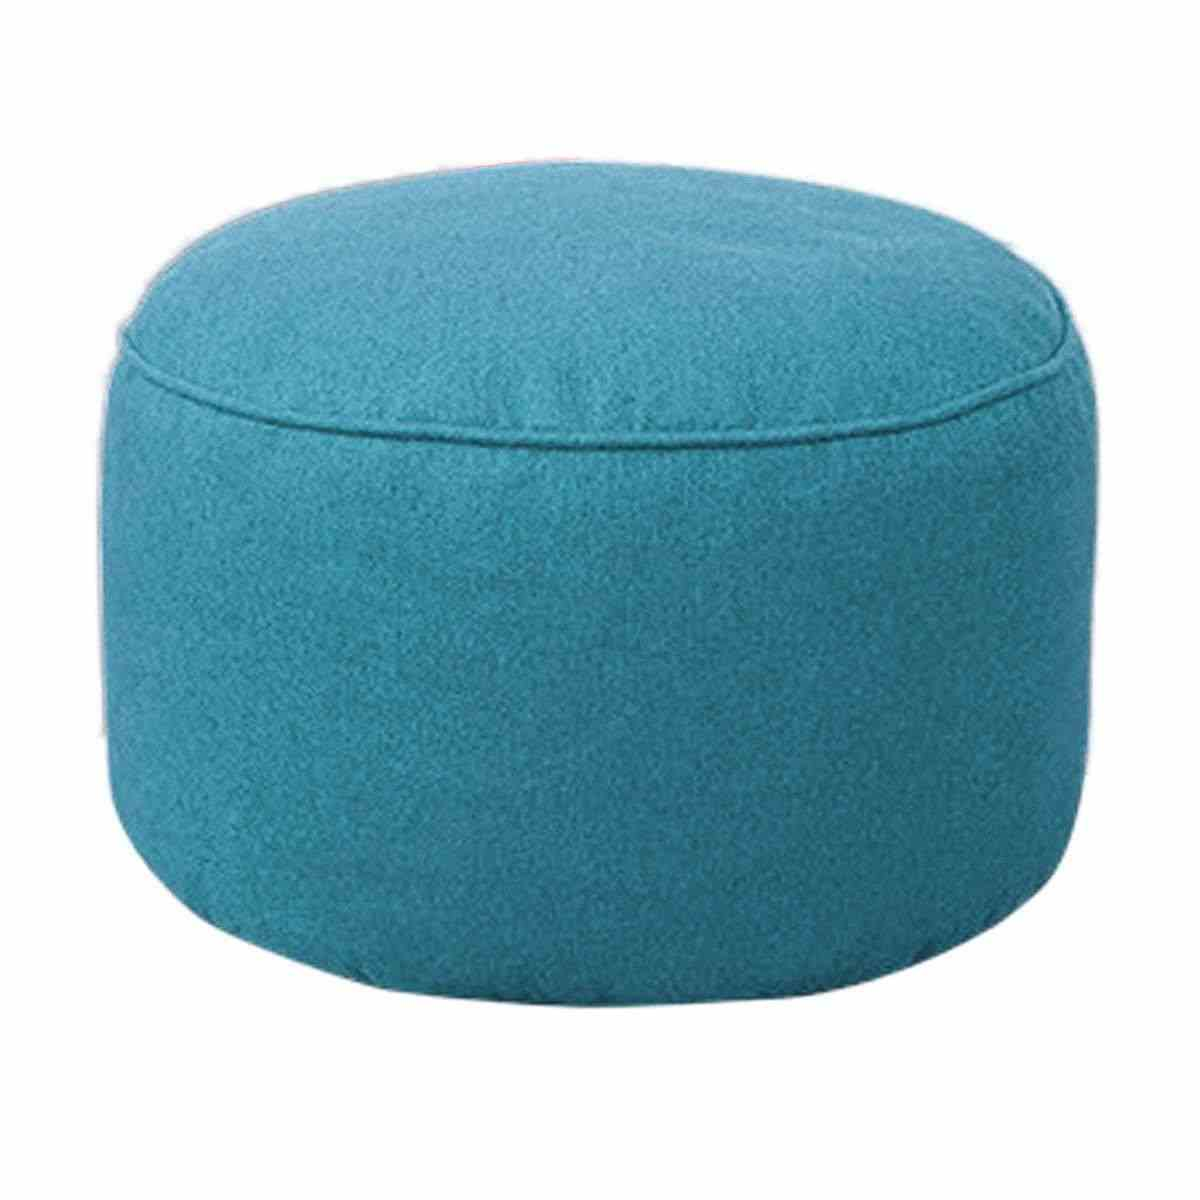 Bean Bag Footstool Cotton Soft Footstool Cover Home Sofa Round Stool Bean Bags Sofa Lounger Cover Washable Without Filler For Living Room Table